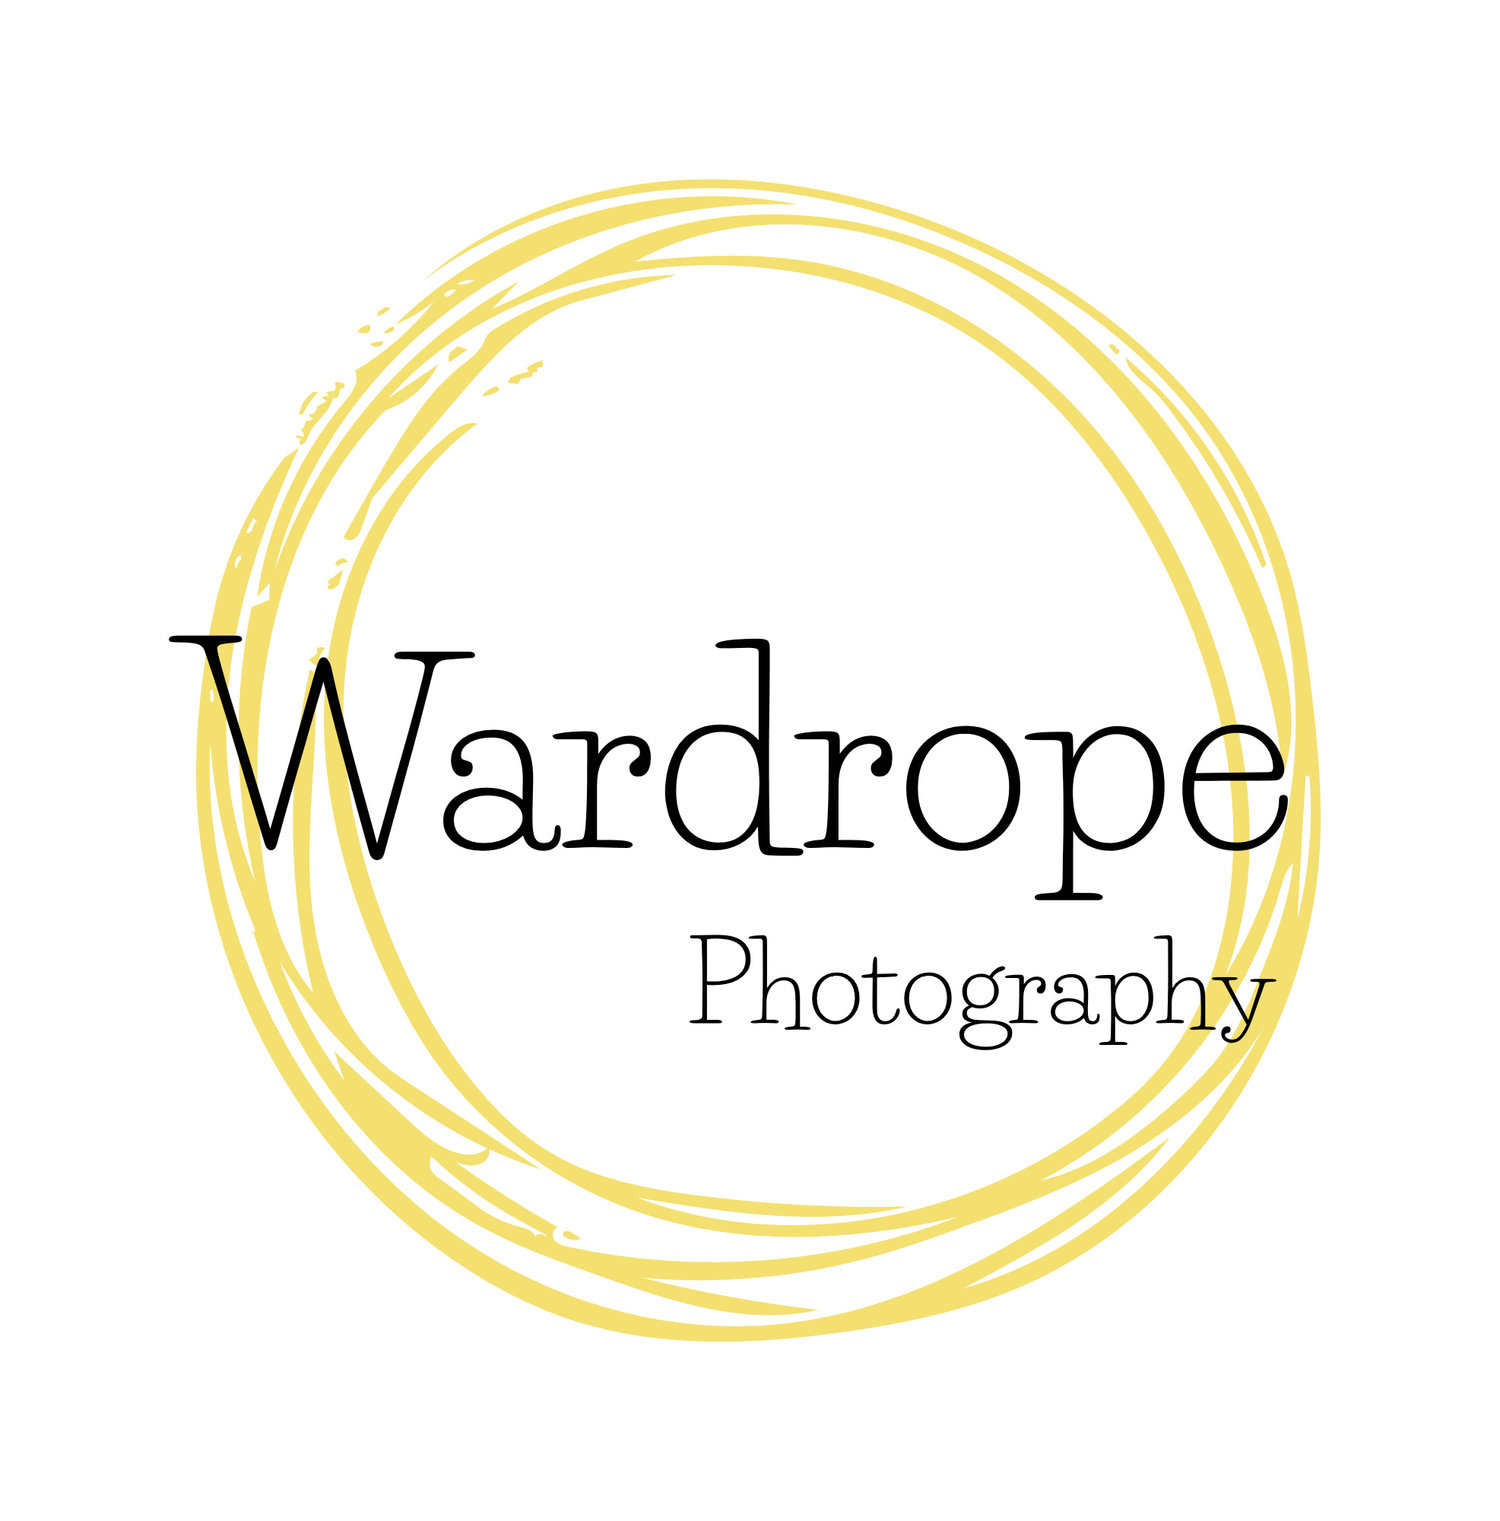 Wardrope Photography